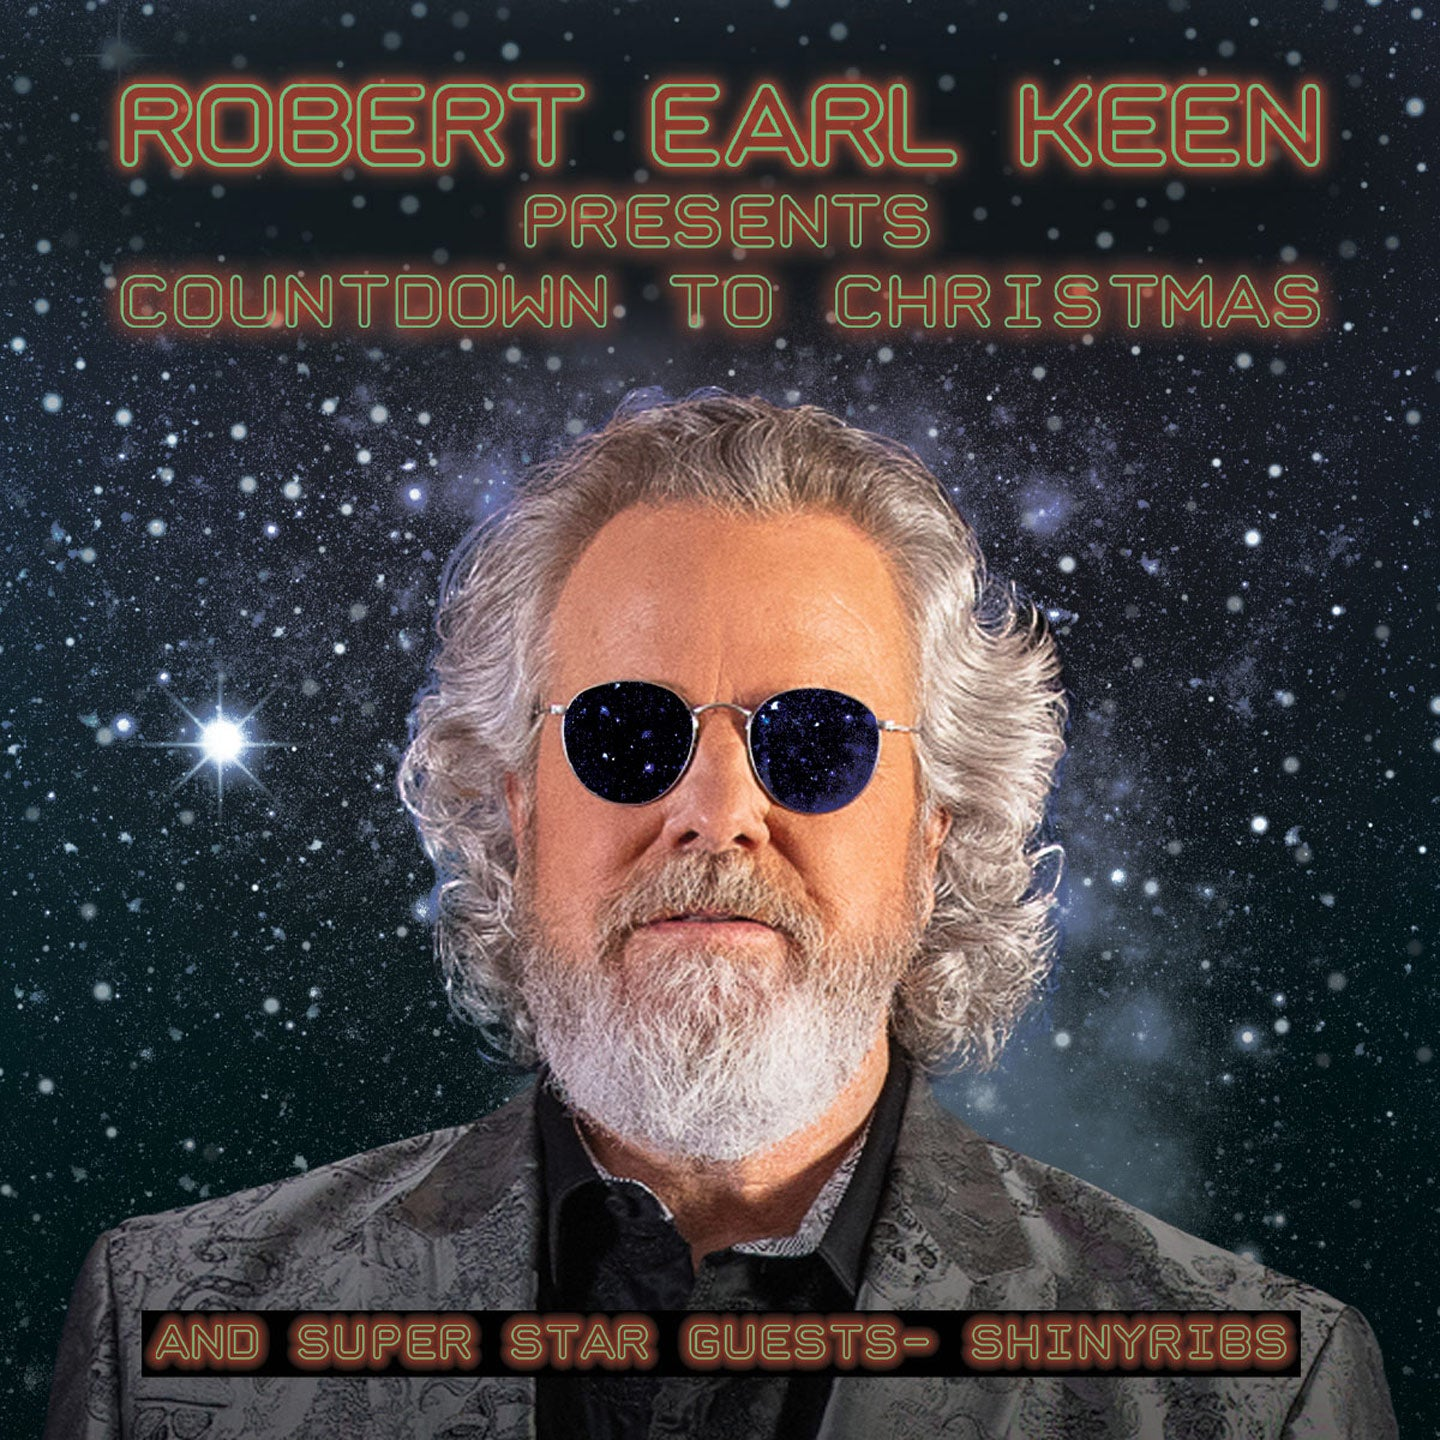 Robert Earl Keen Presents Countdown to Christmas